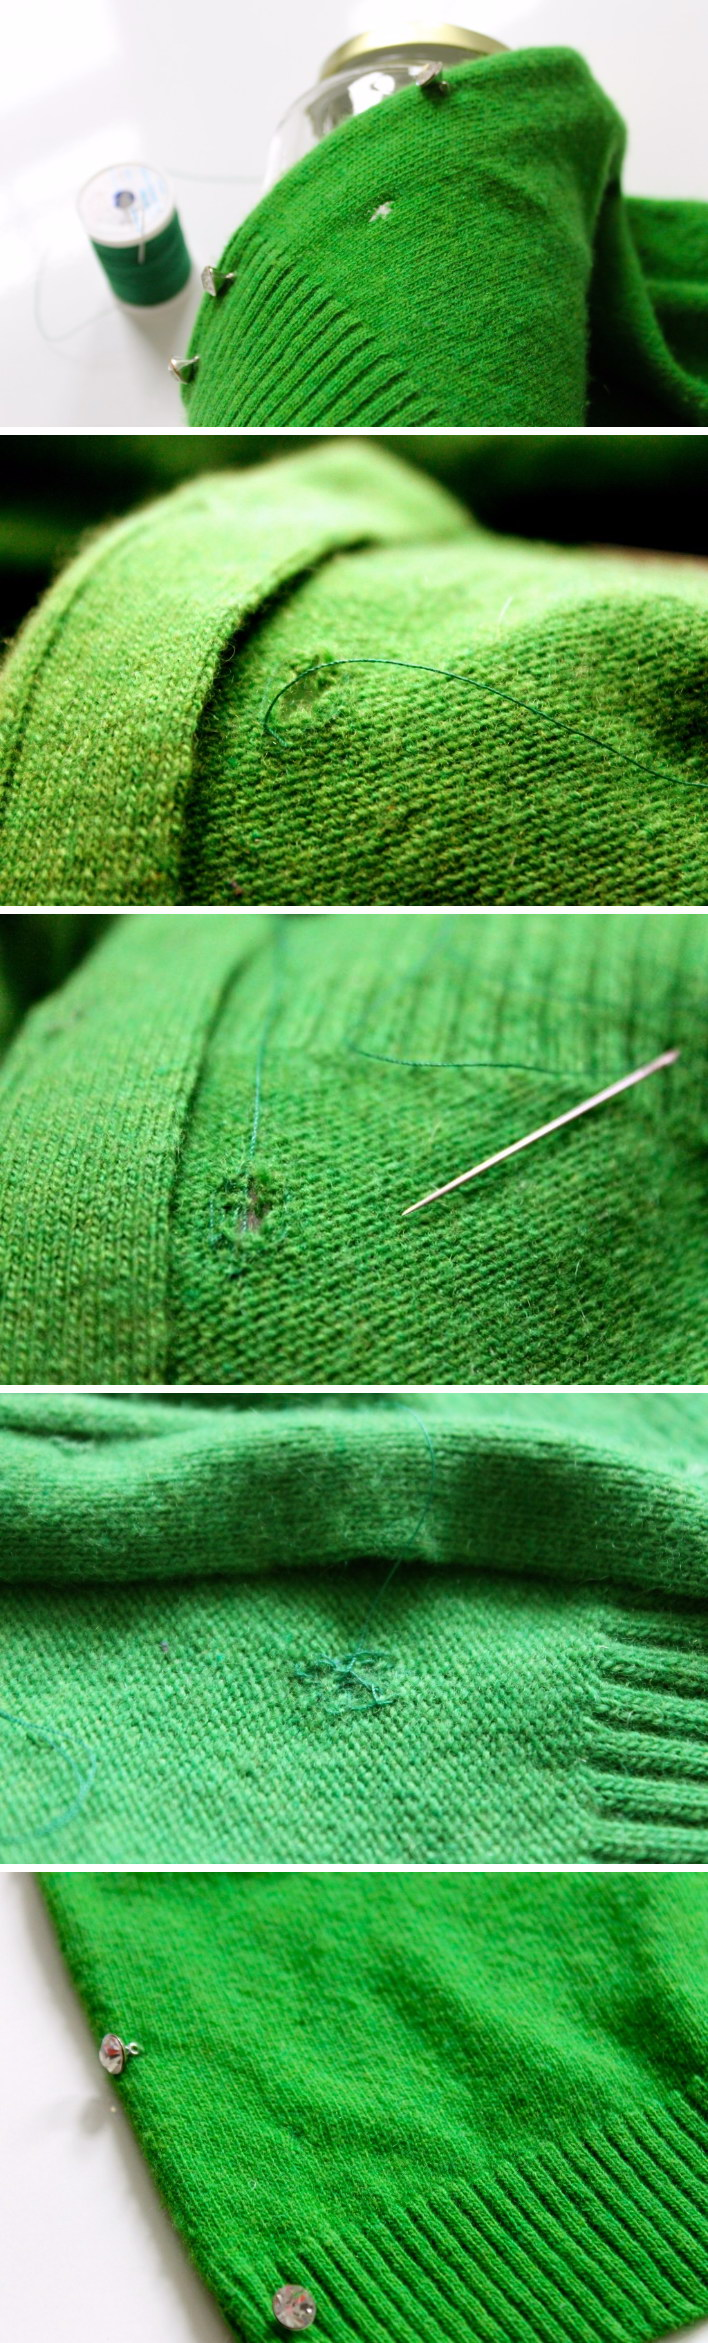 Fix a Hole in a Woolen Sweater with Thread Using Vertical Stitches.